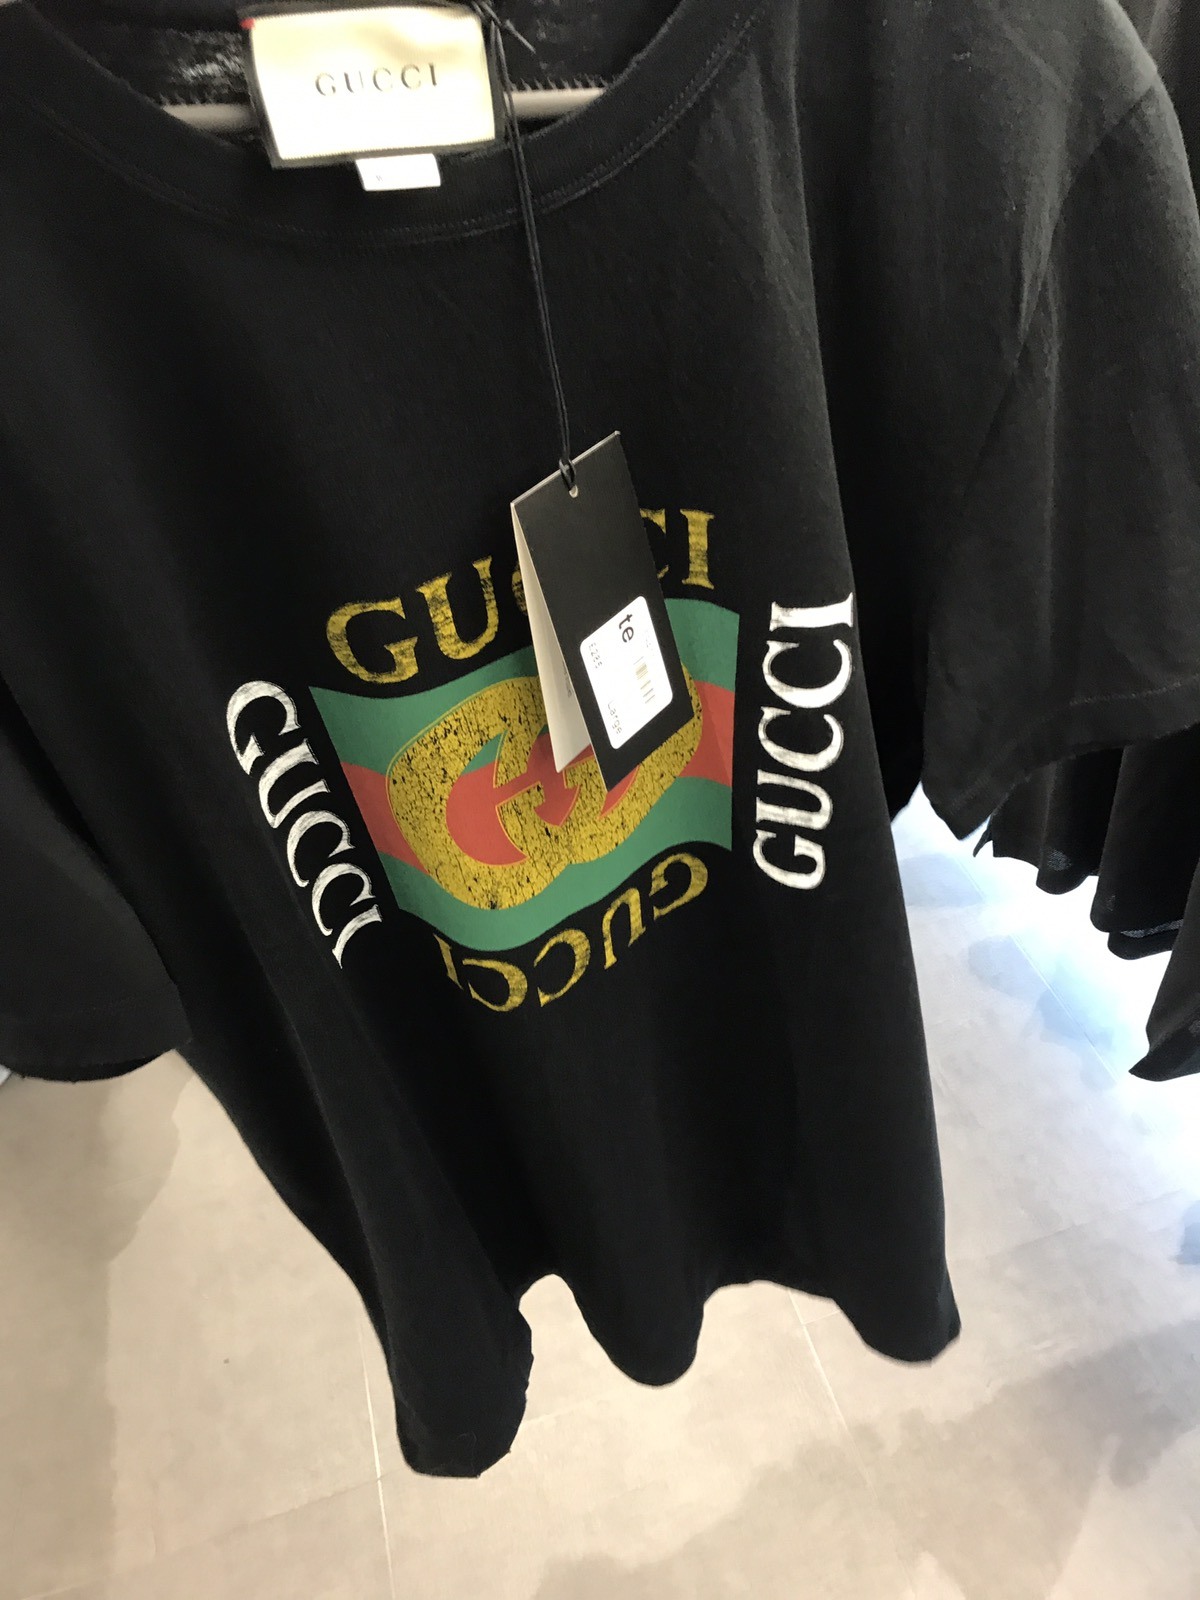 f24765737 Fake Black Gucci T Shirt - Nils Stucki Kieferorthopäde